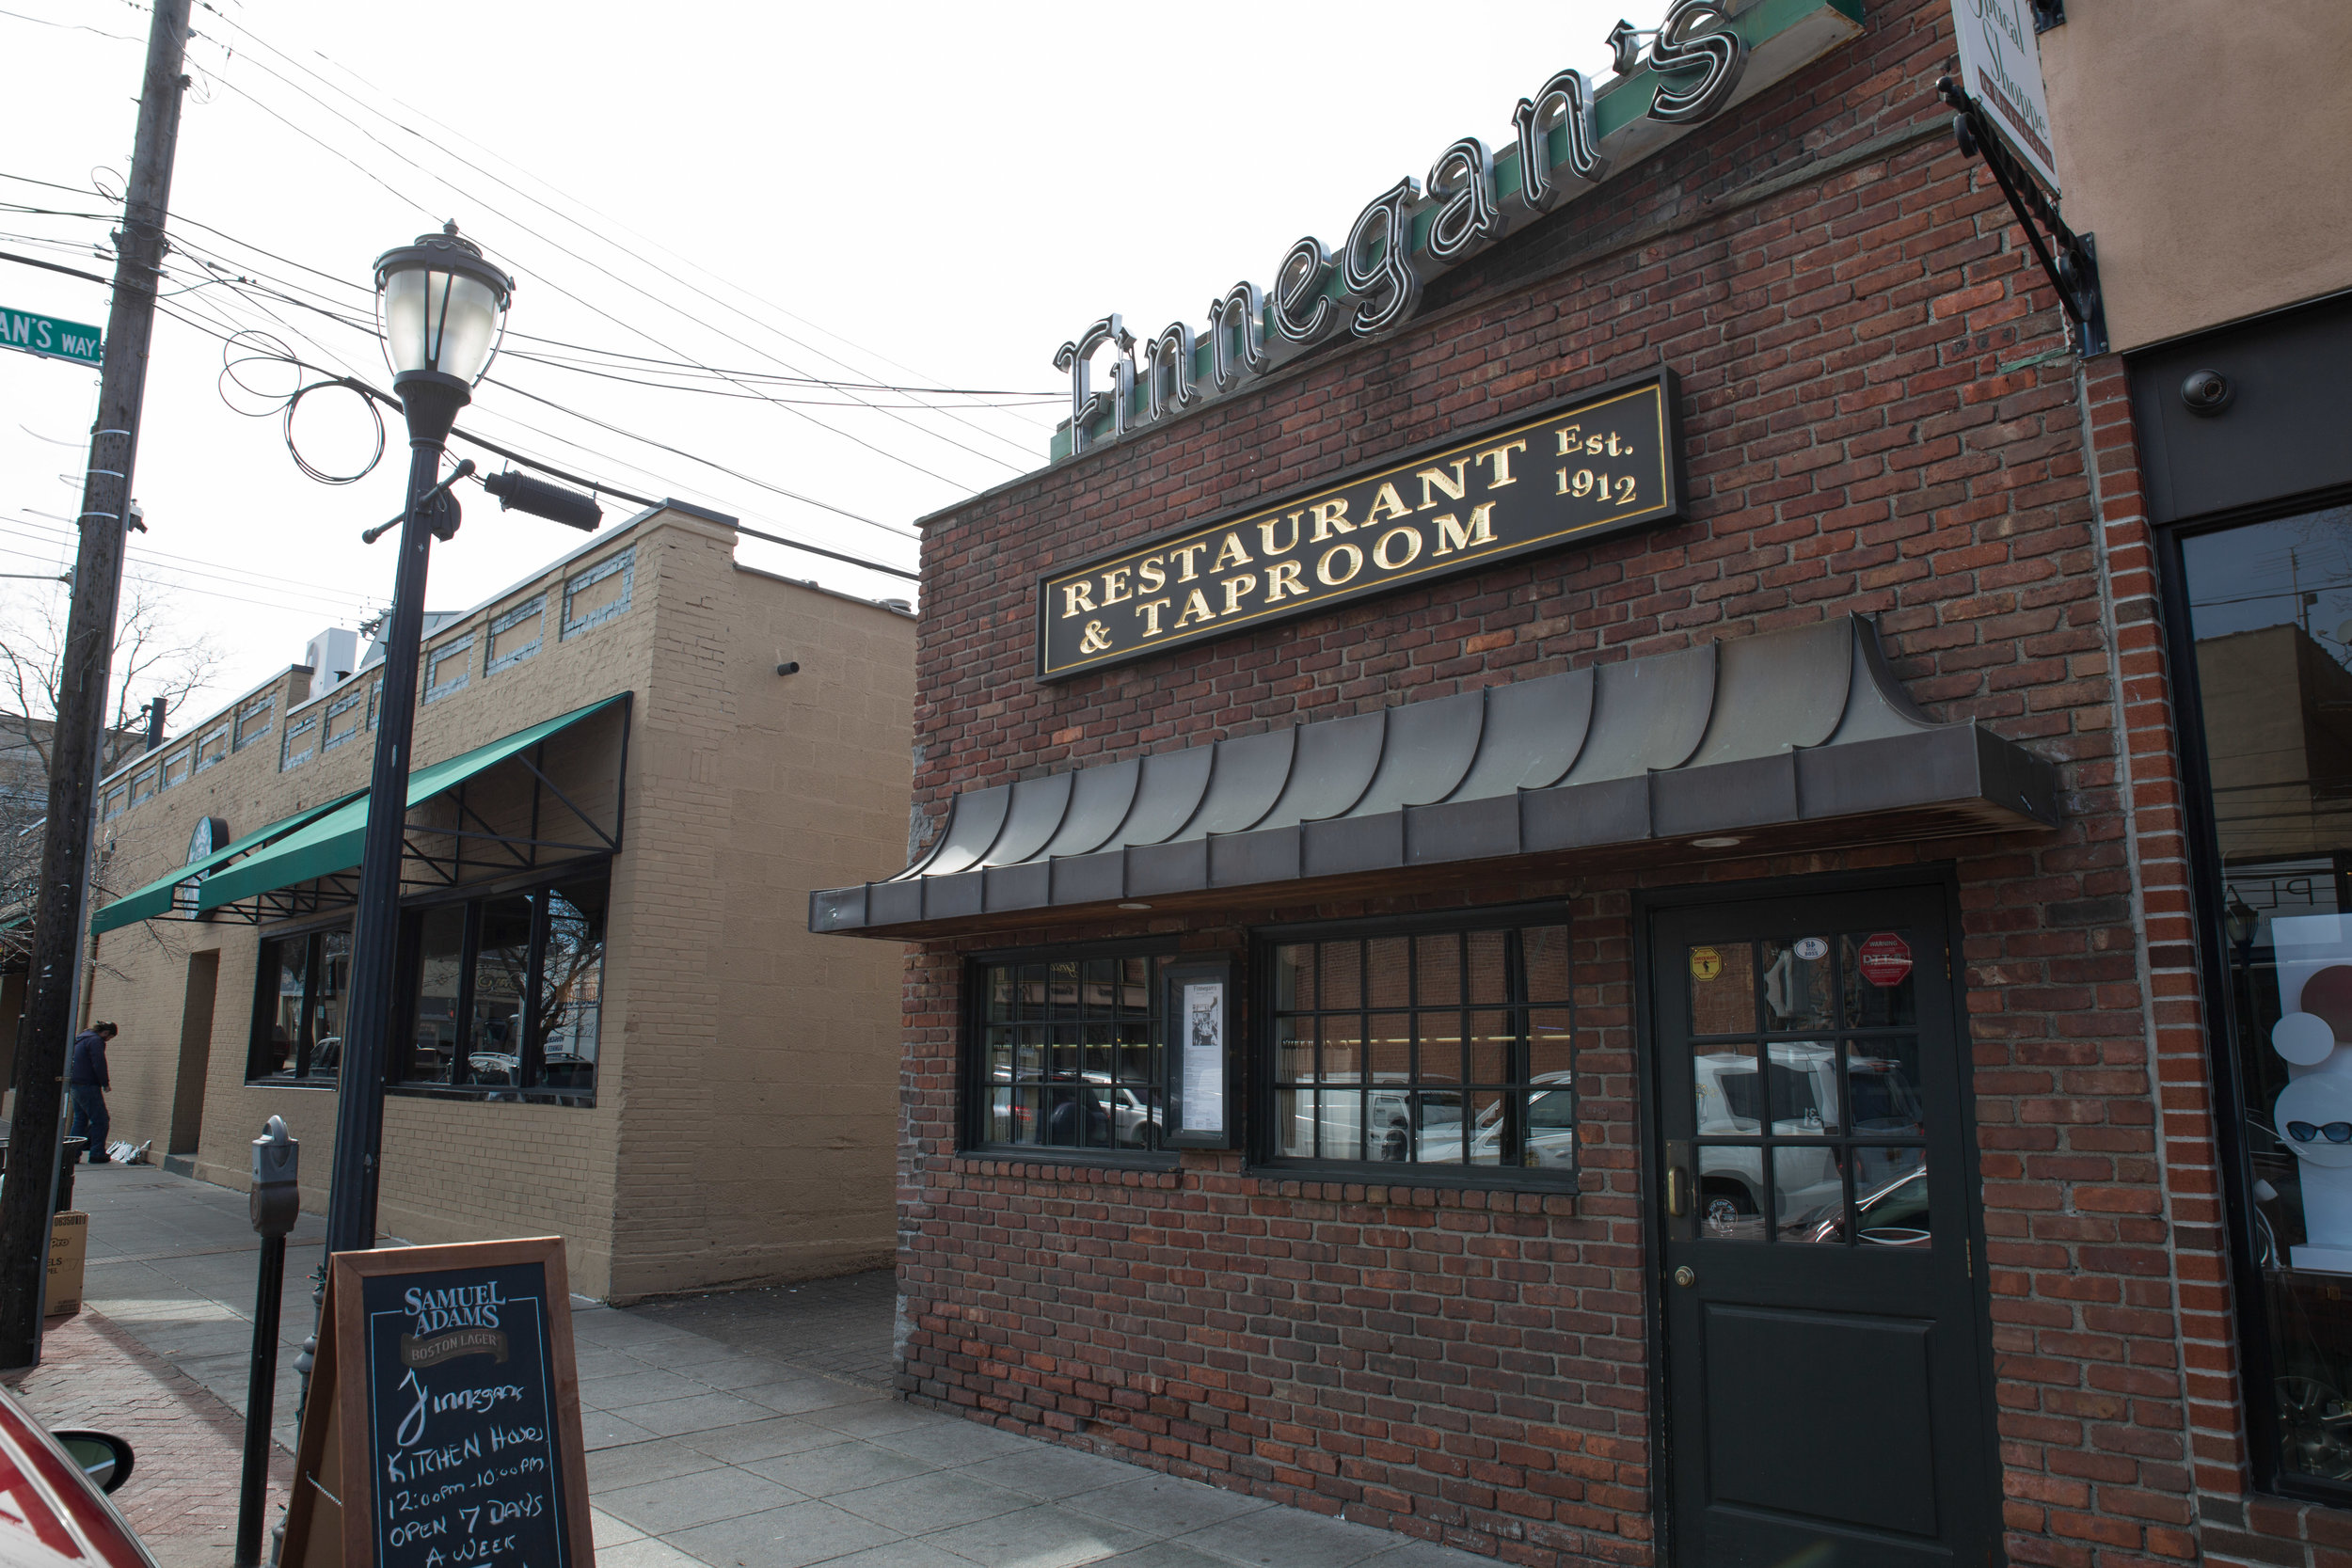 Finnegan's Restaurant and Tap Room was established in 1912, serving as not only a source of delicious delights and drinks, but also as a community center for the Town of Huntington